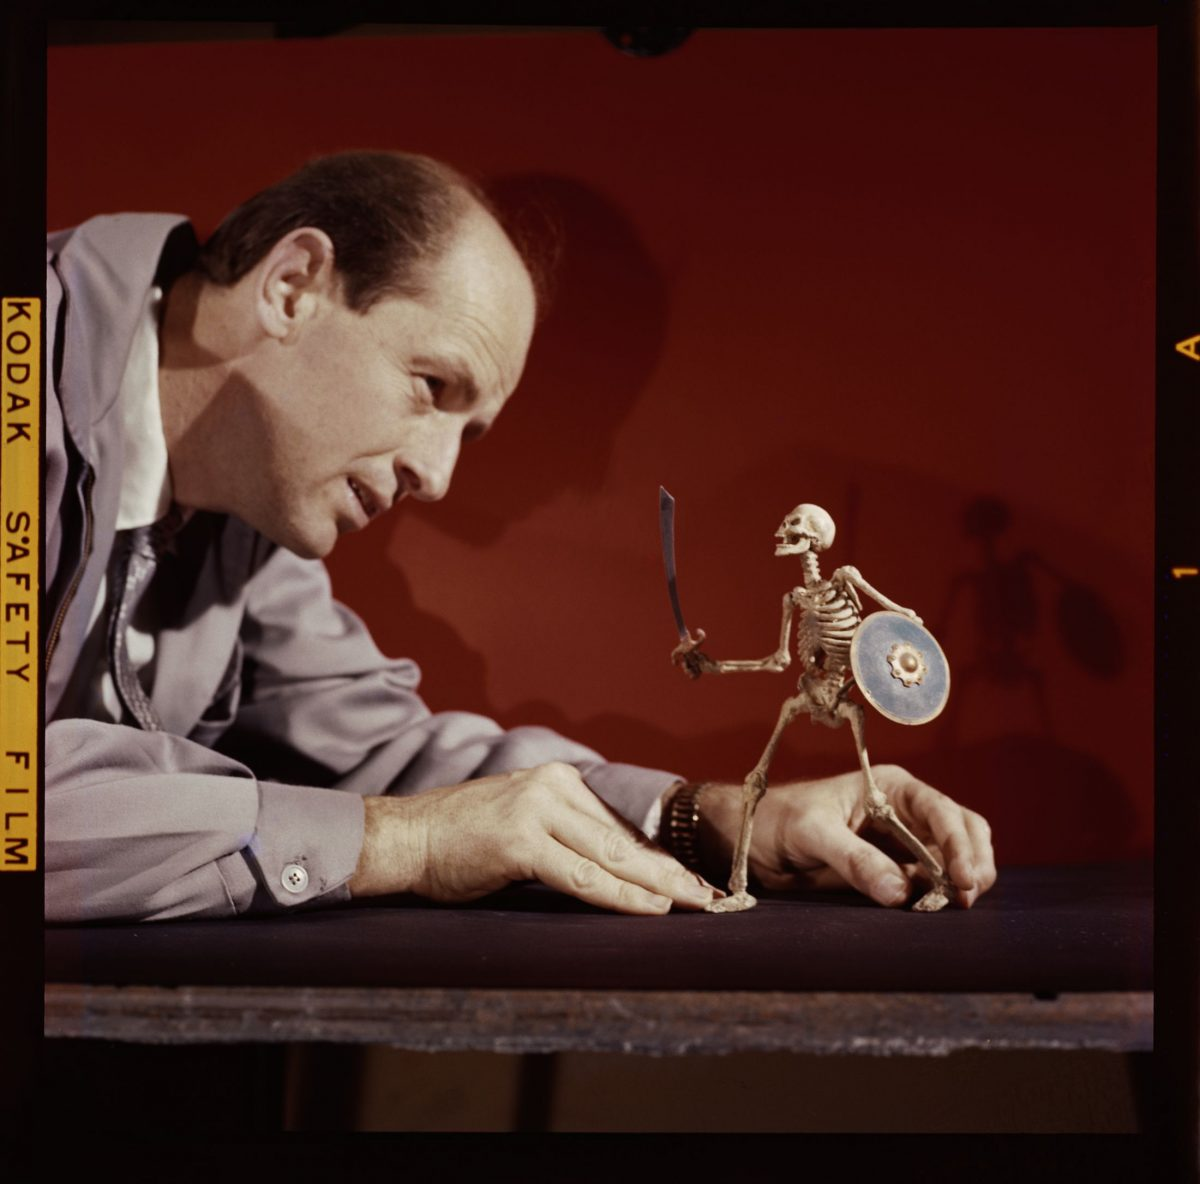 Ray Harryhausen (1920-2013) animating Skeleton model (The 7th Voyage of Sinbad, 1958) © The Ray and Diana Harryhausen Foundation (Charity No. SC001419)